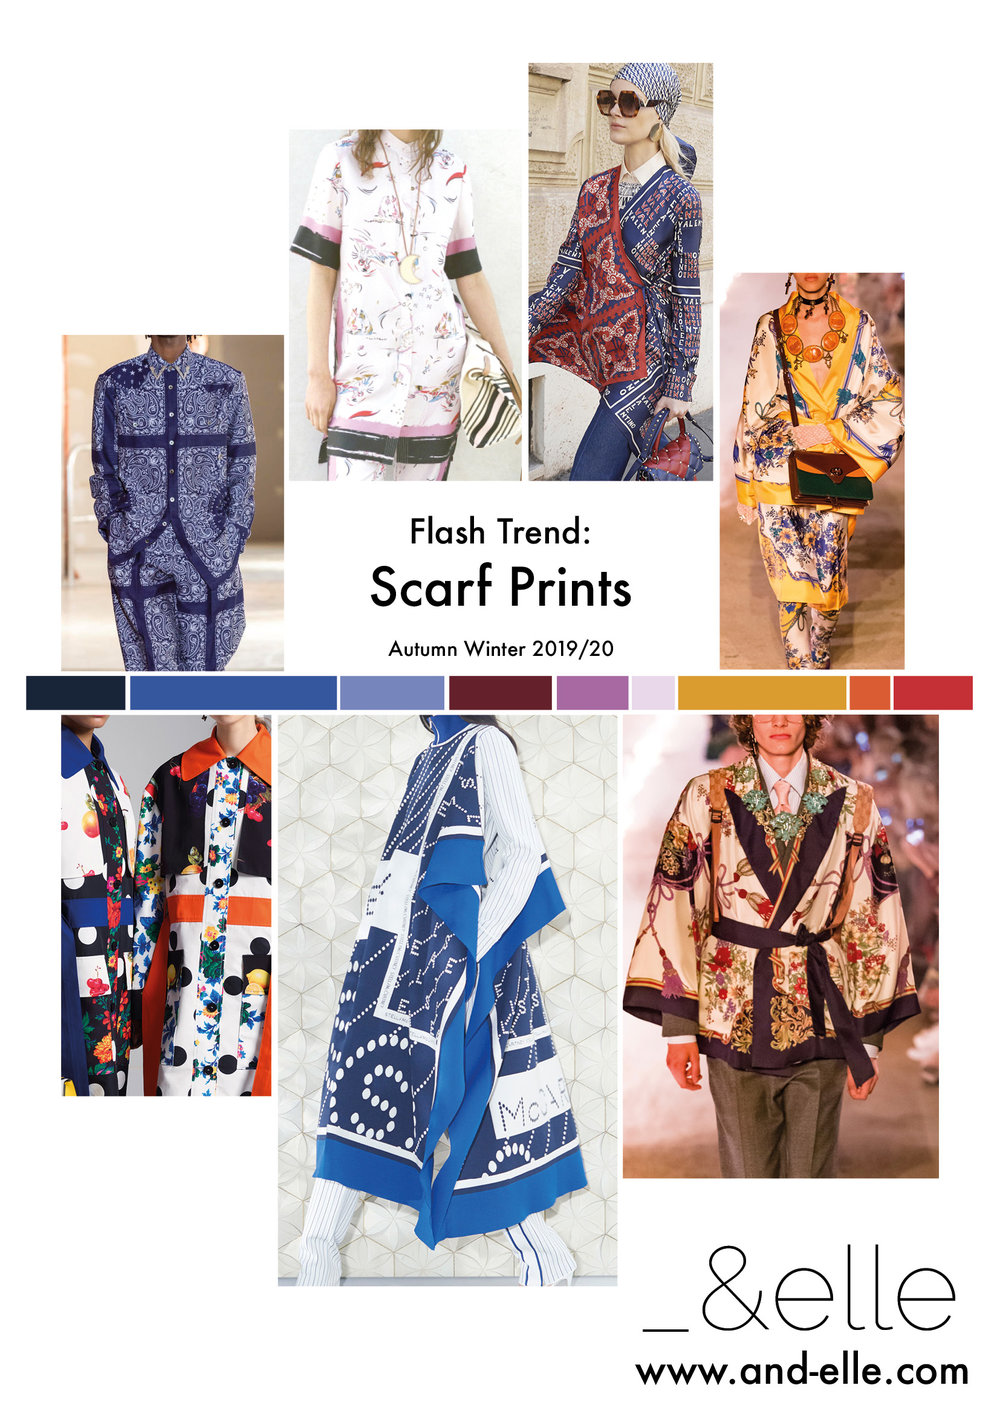 Scarf Prints are going to be a key print design trend across the next three season. Foulards, borders and paisleys are all important features of this trend.